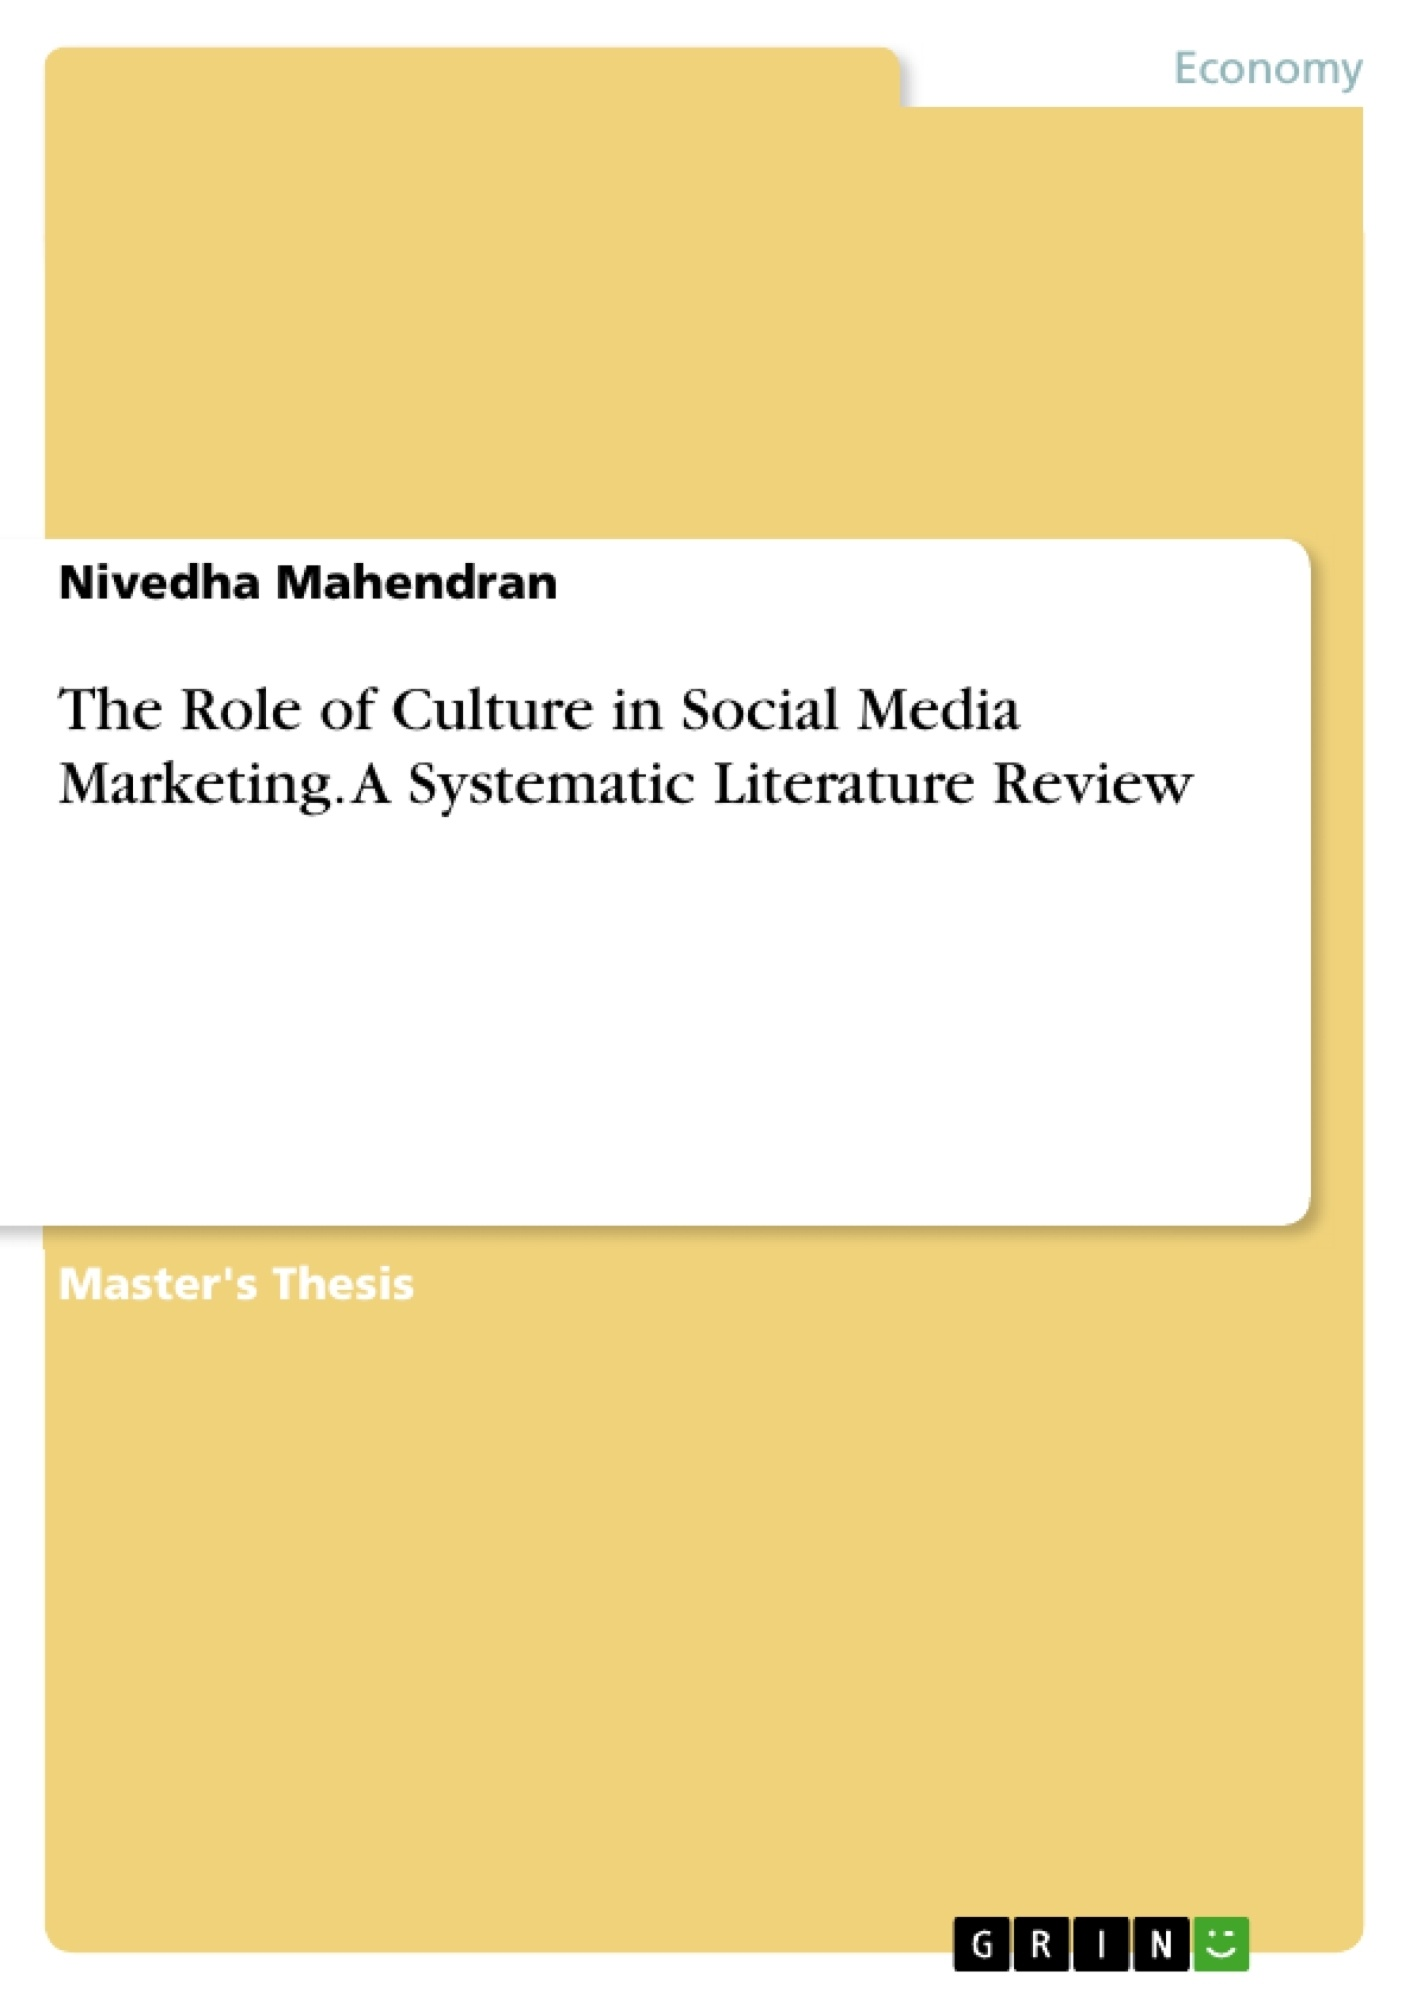 Title: The Role of Culture in Social Media Marketing. A Systematic Literature Review